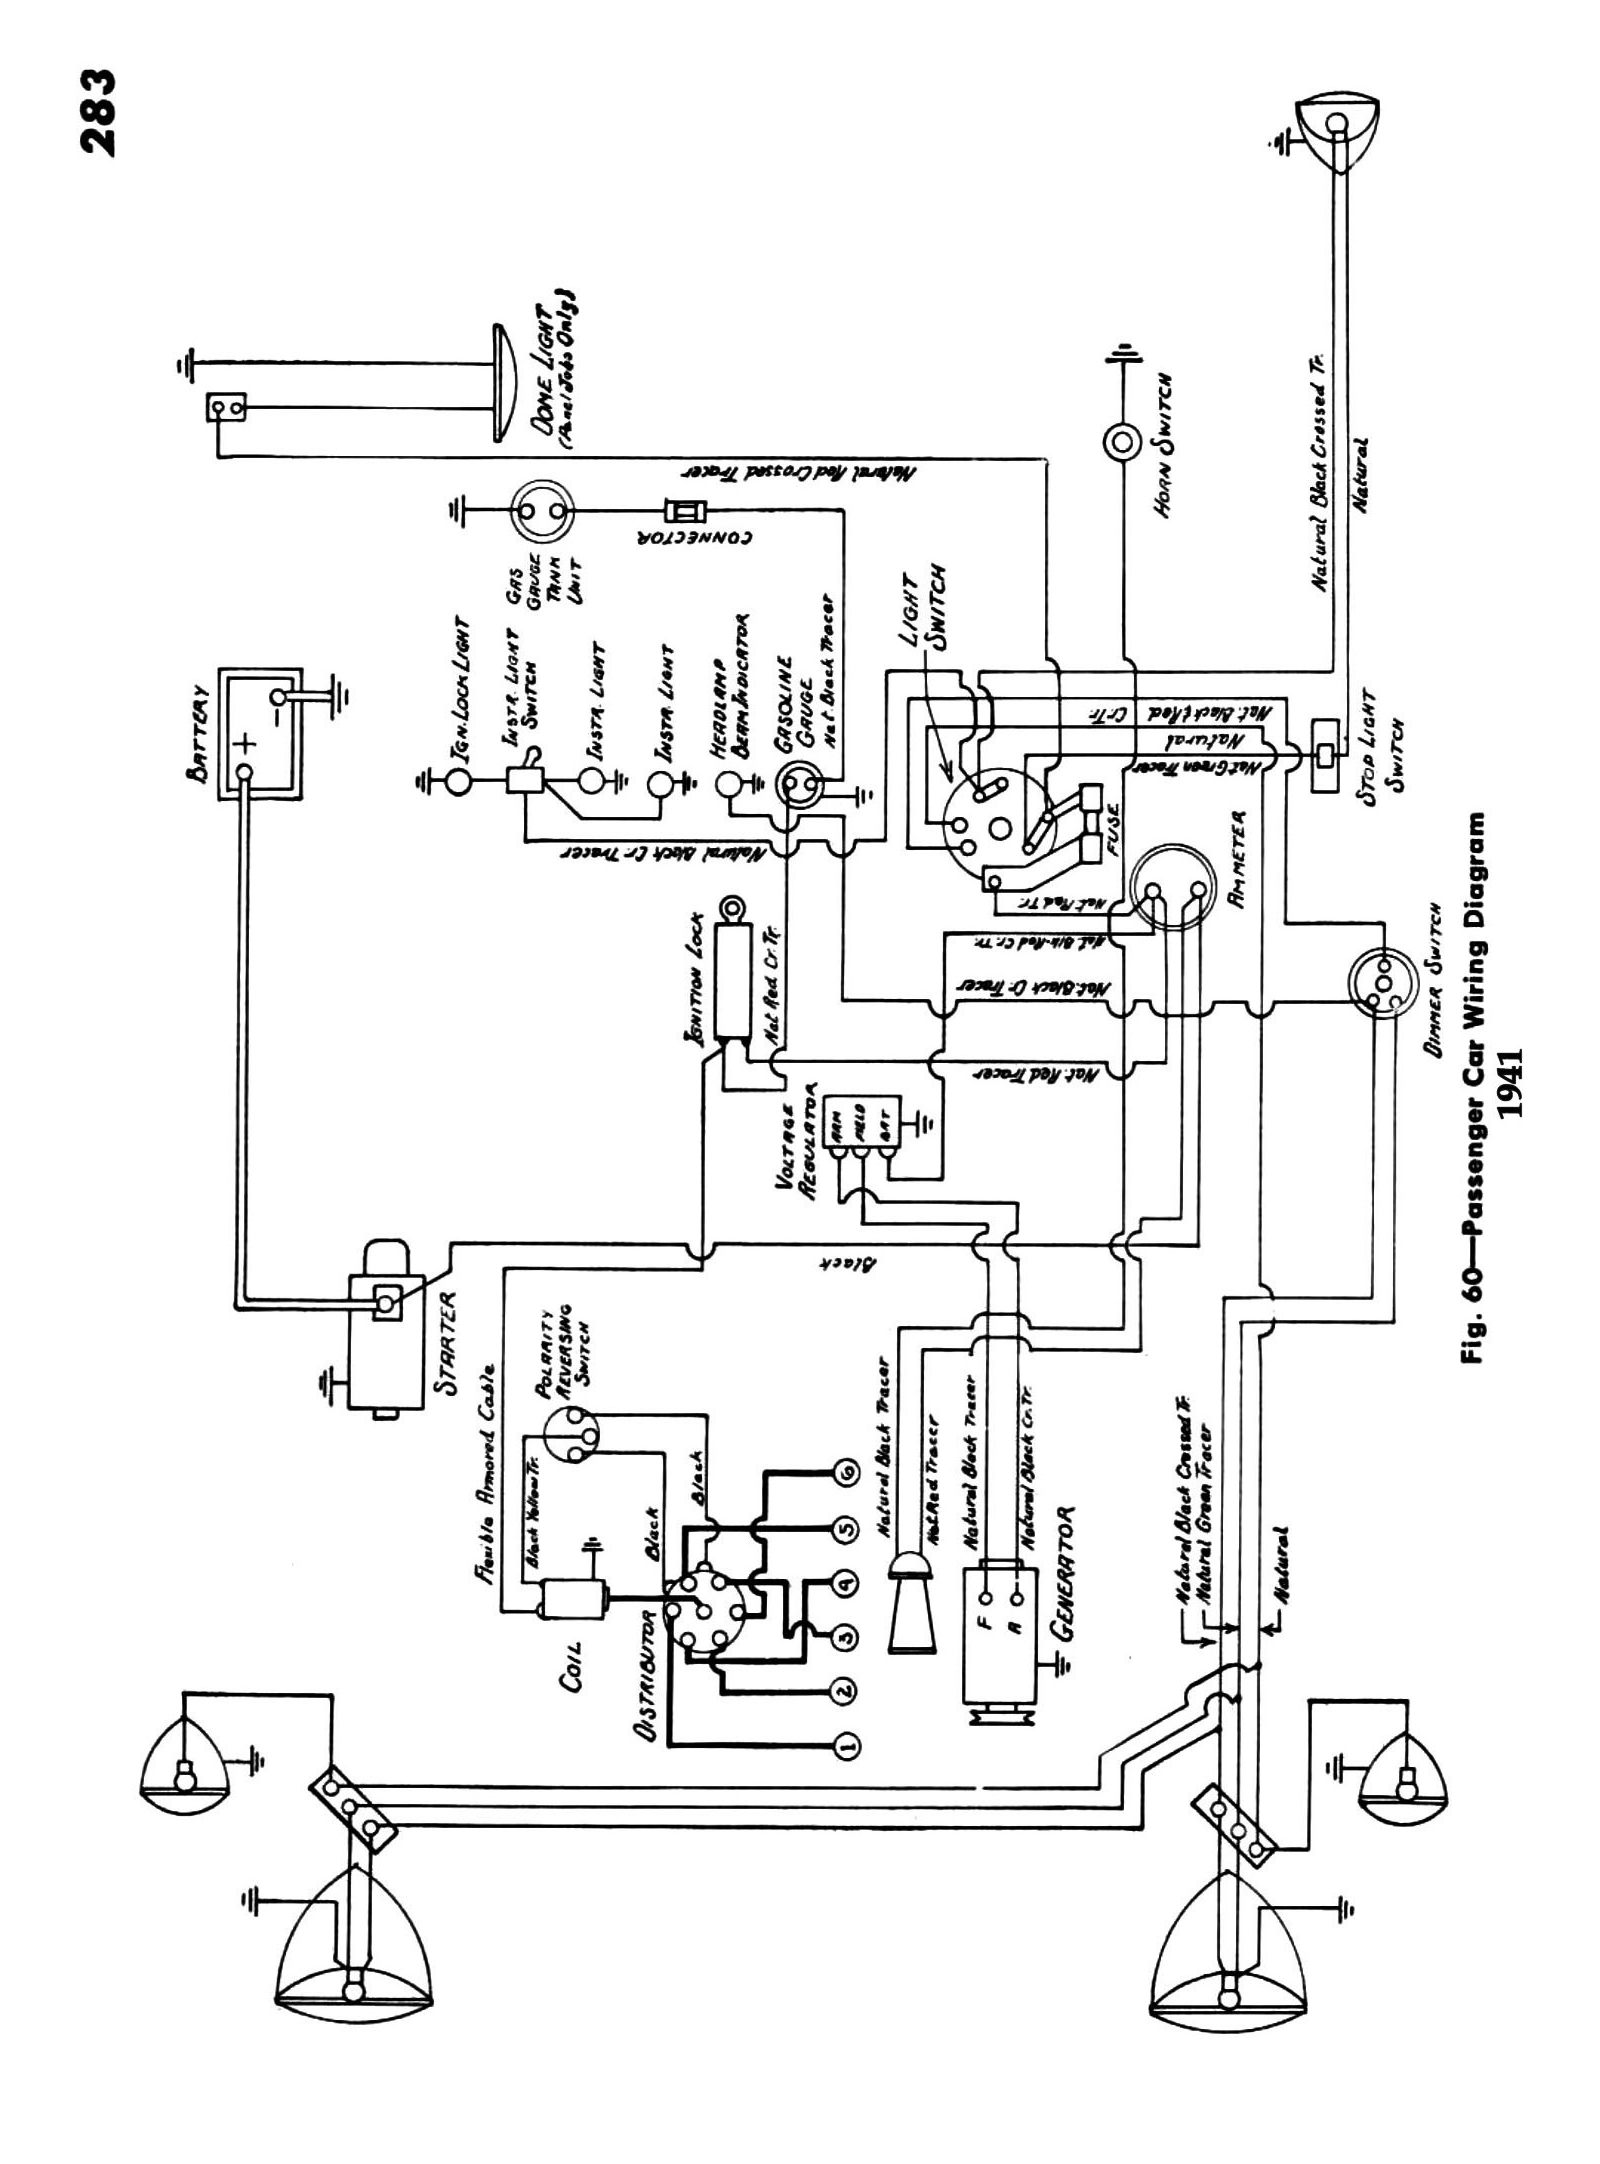 314040 on 1959 chevy truck wiring diagram on bus